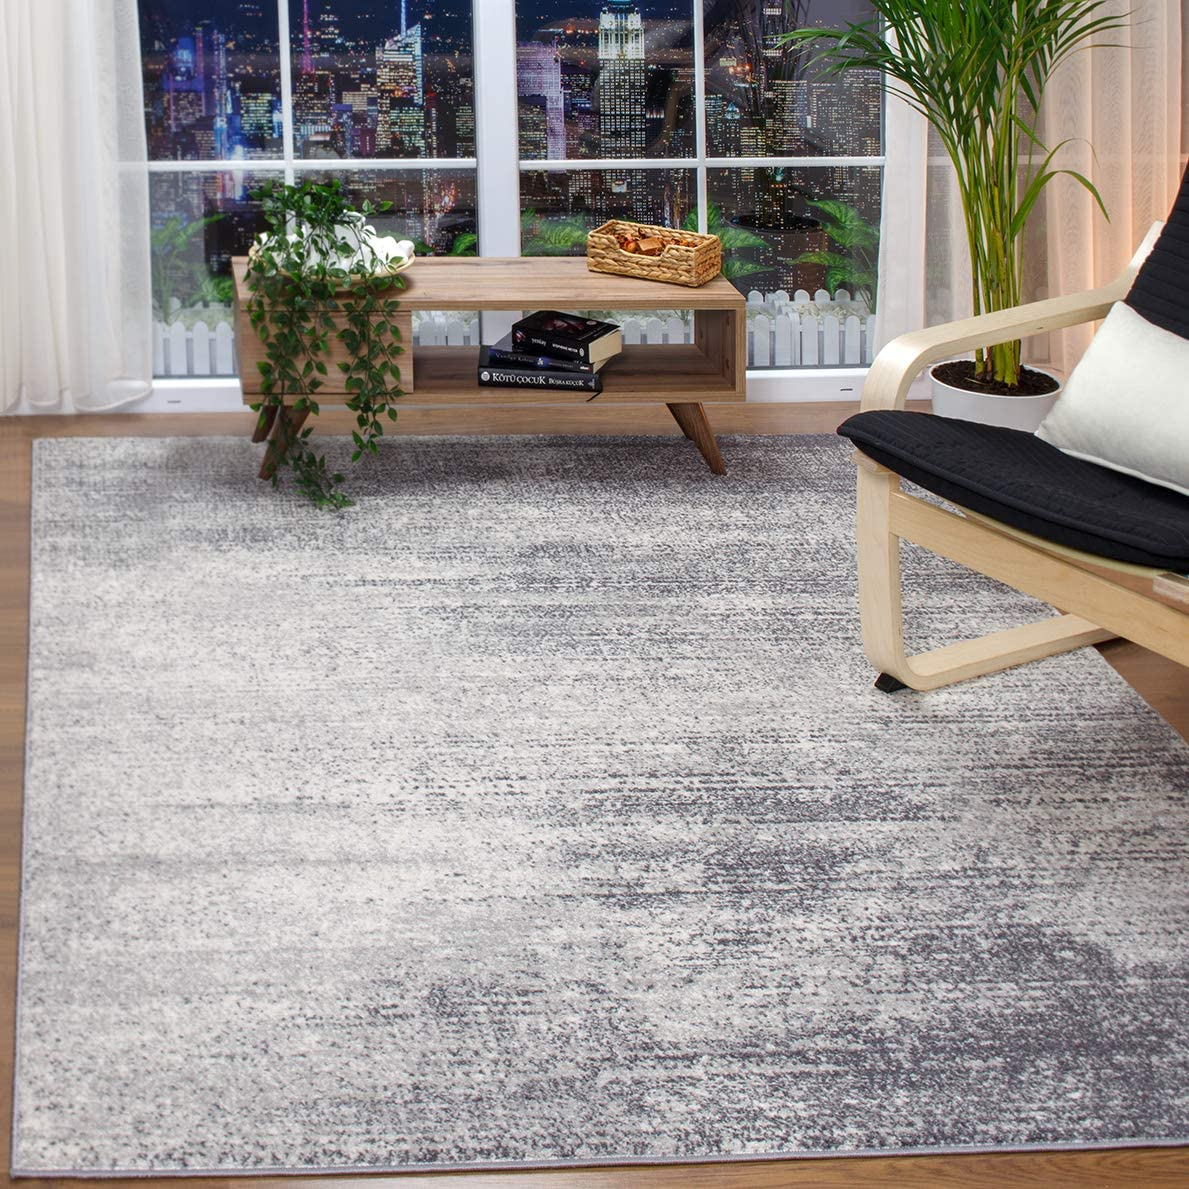 Antep Rugs Florida Collection Distressed Modern Abstract Polypropylene Indoor Area Rug Grey, 8 x 10